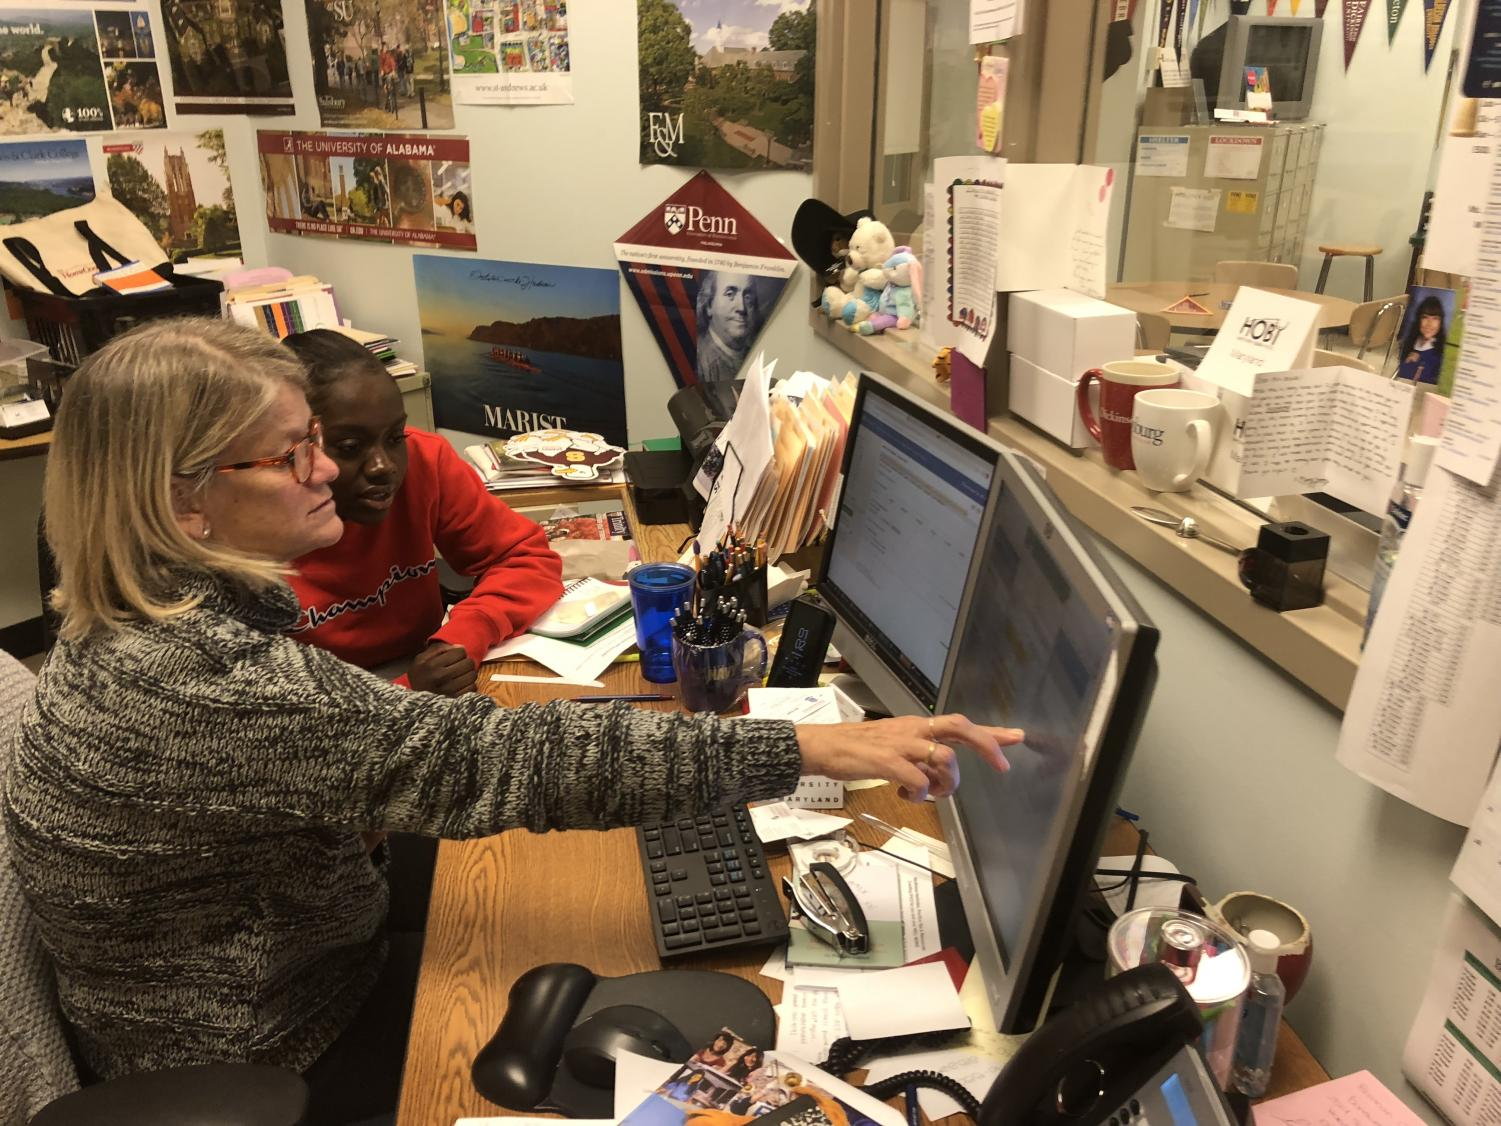 Senior Janice working with Career/Center Information Coordinator Kate Heald on the college application process.